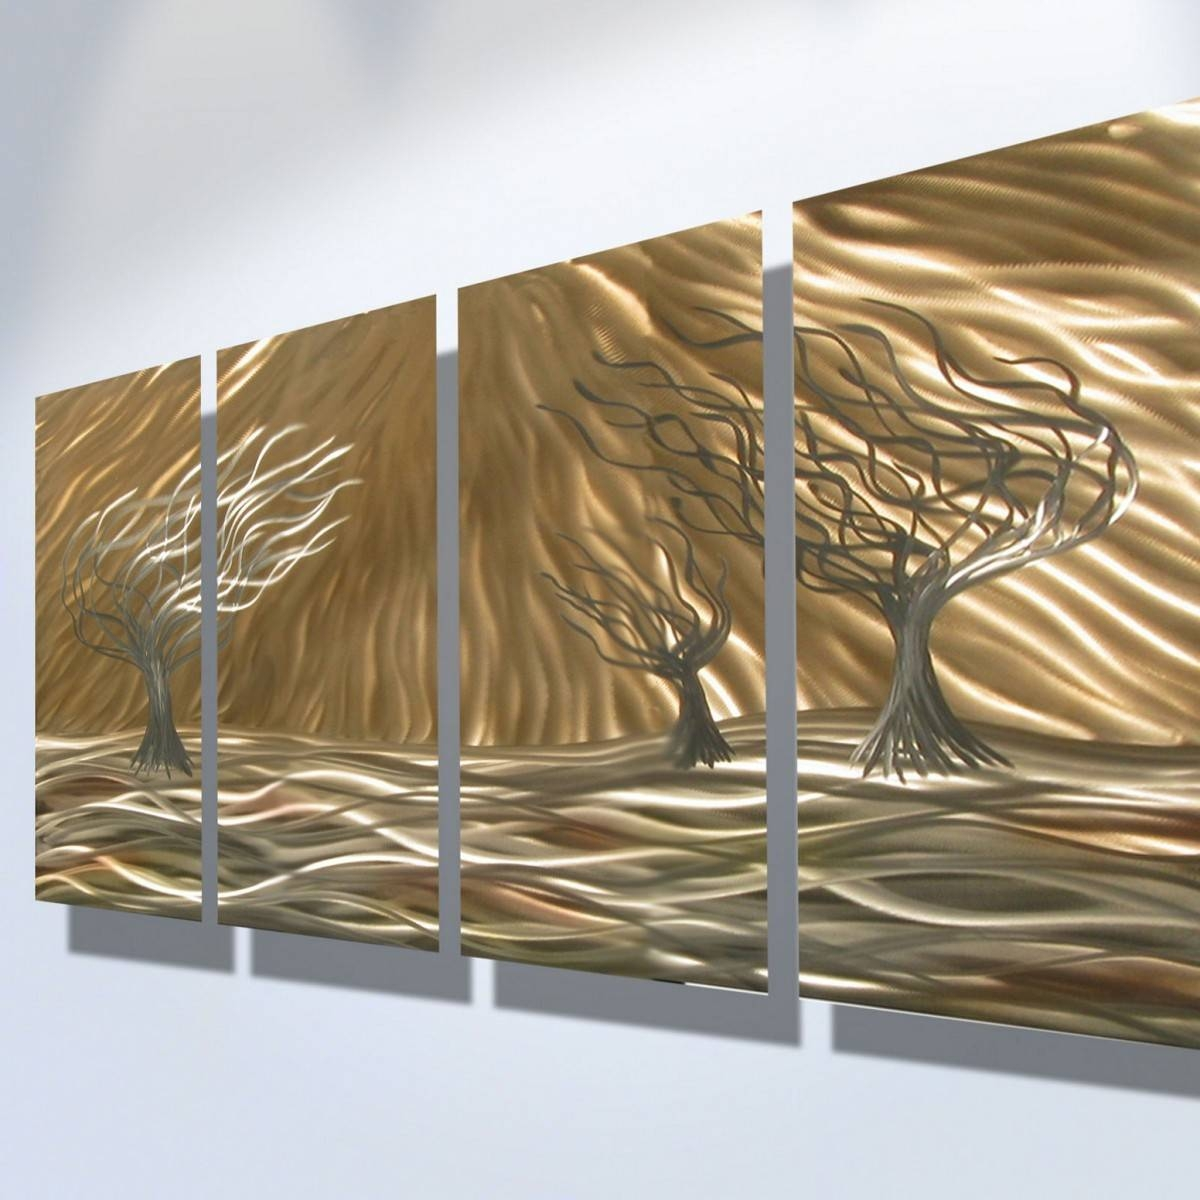 Metal Wall Art Panels For Interior Décor In Most Popular Metal Wall Artworks (View 6 of 20)